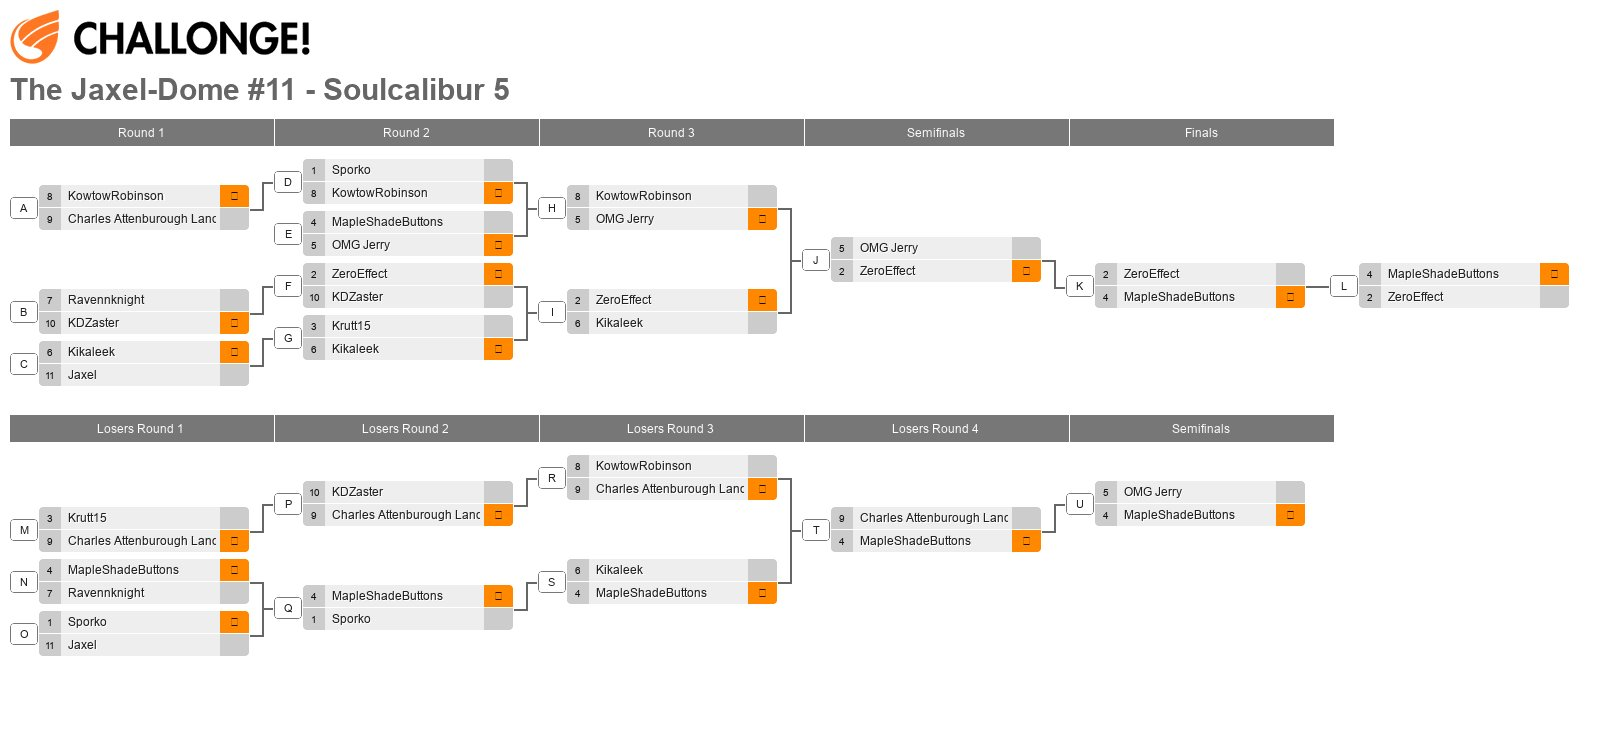 The Jaxel-Dome #11 - Soulcalibur 5